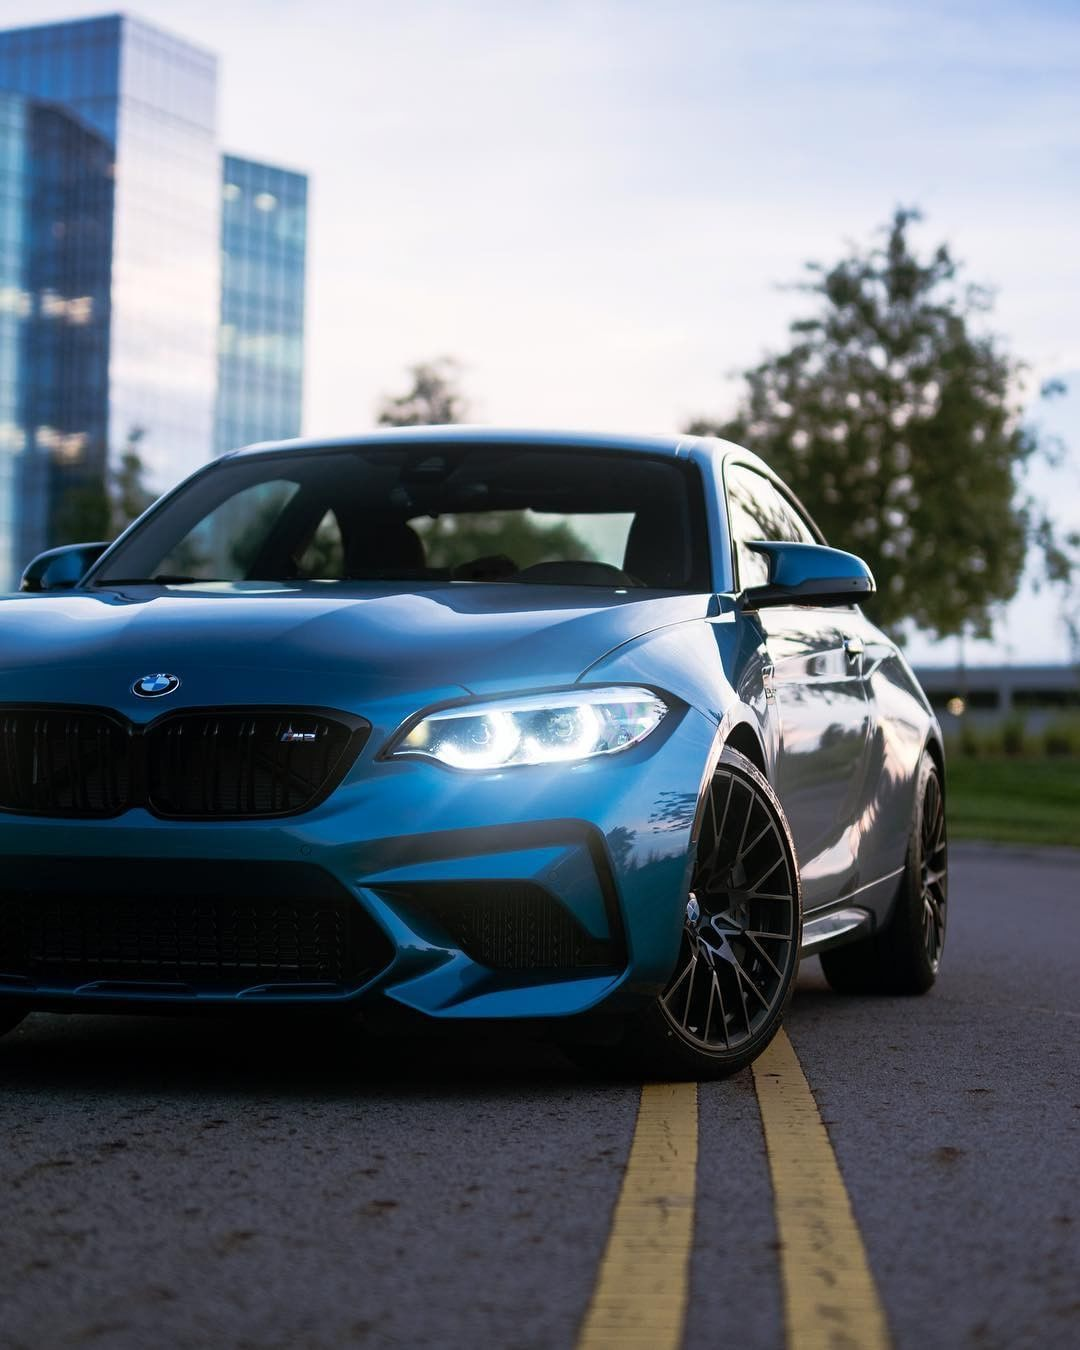 Bmw F87 M2 Competition In Long Beach Blue Metallic Bmw M2 Bmw